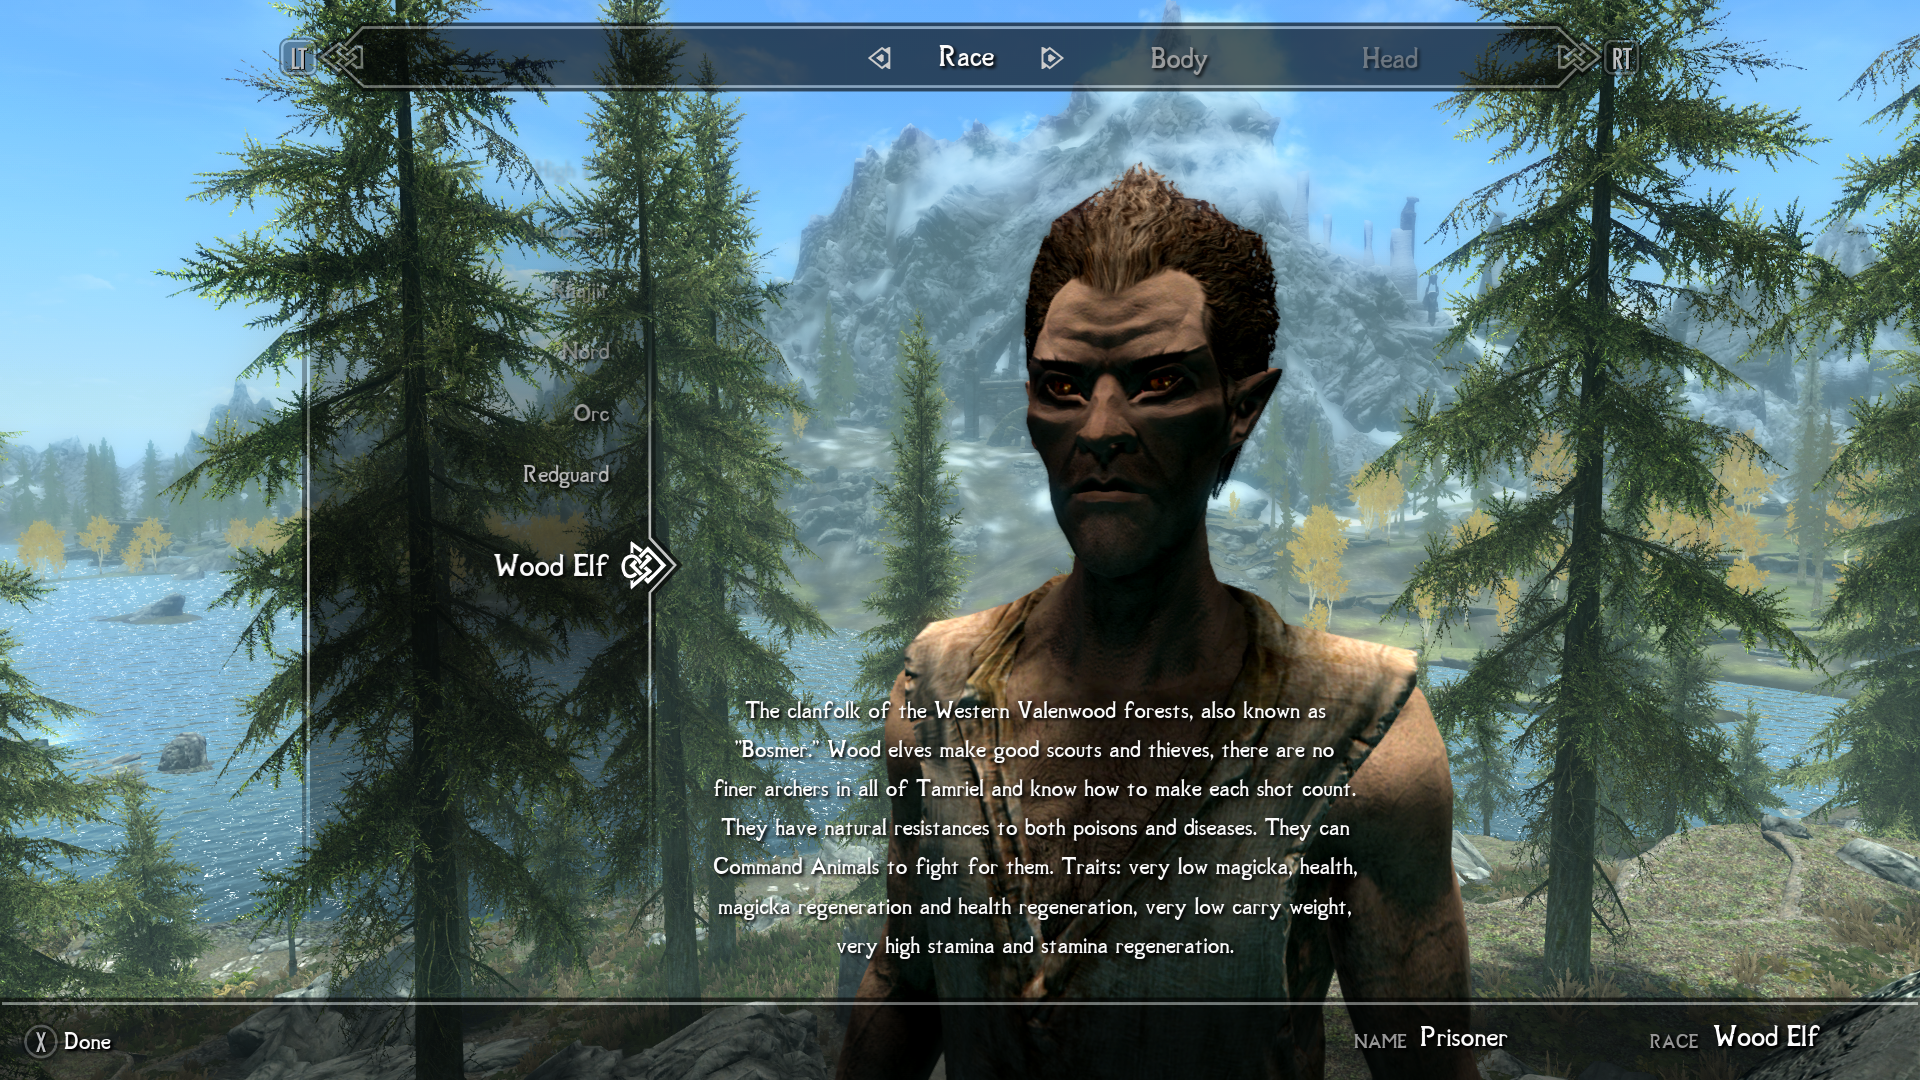 YASH - Yet Another Skyrim Hardcore mod at Skyrim Special Edition